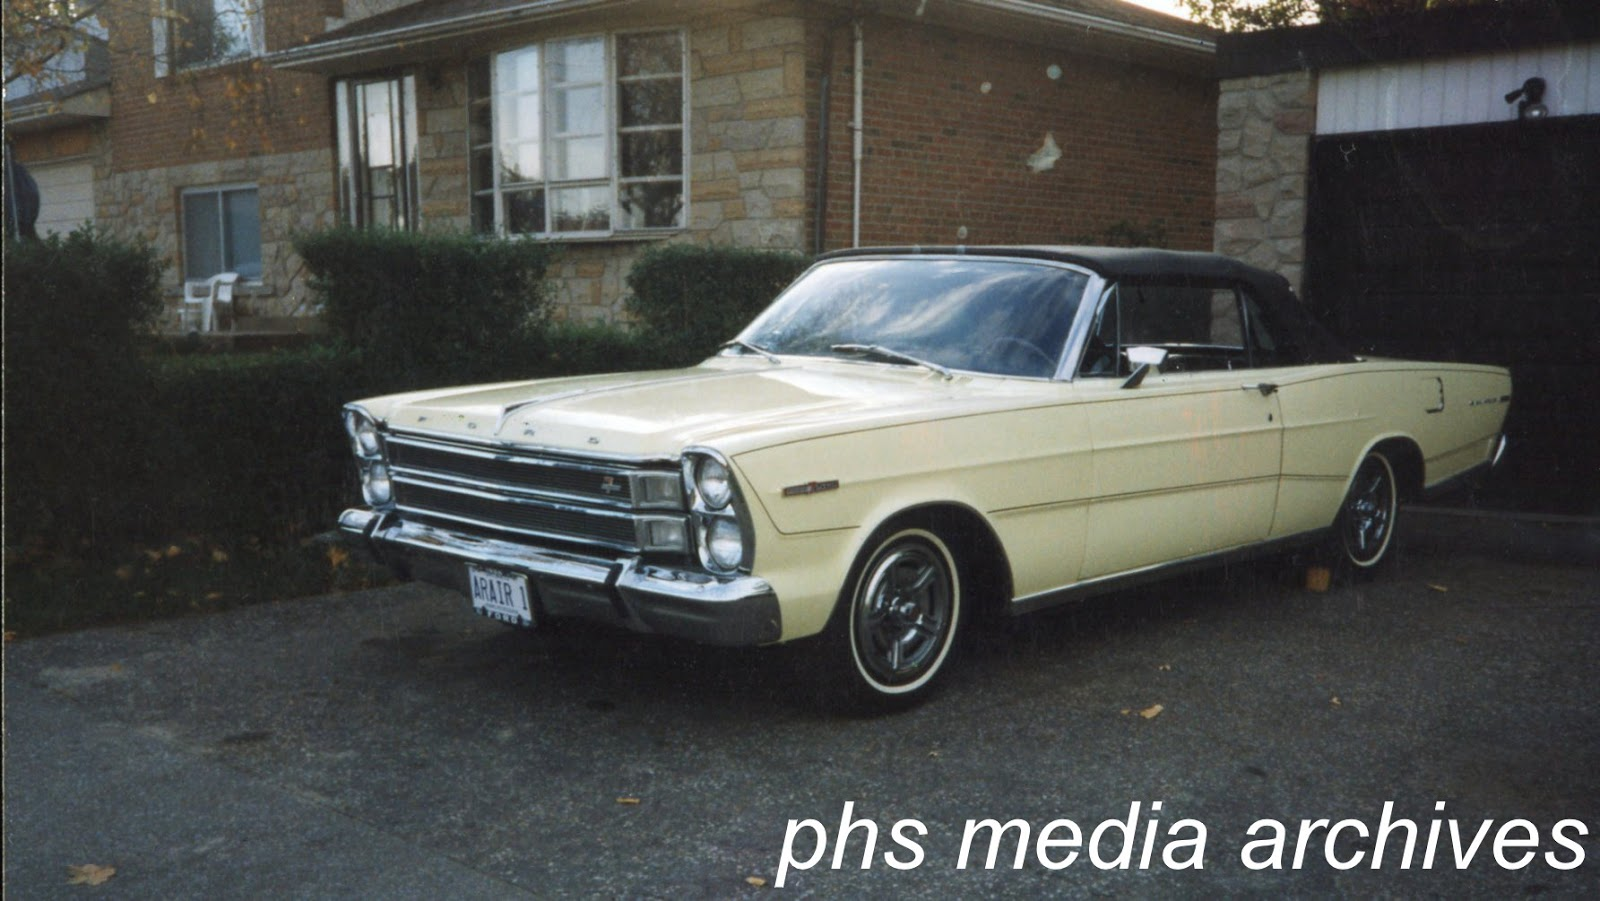 American Muscle 1966 Galaxie 7 Liter Fever Phscollectorcarworld 1960 Studebaker Lark Wiring Diagram This Springtime Yellow Convertible Was A 428 Four Speed Car Found Abandoned At Grand Forks Afb In North Dakota Bj Davis Rescued The Long Term Outdoor